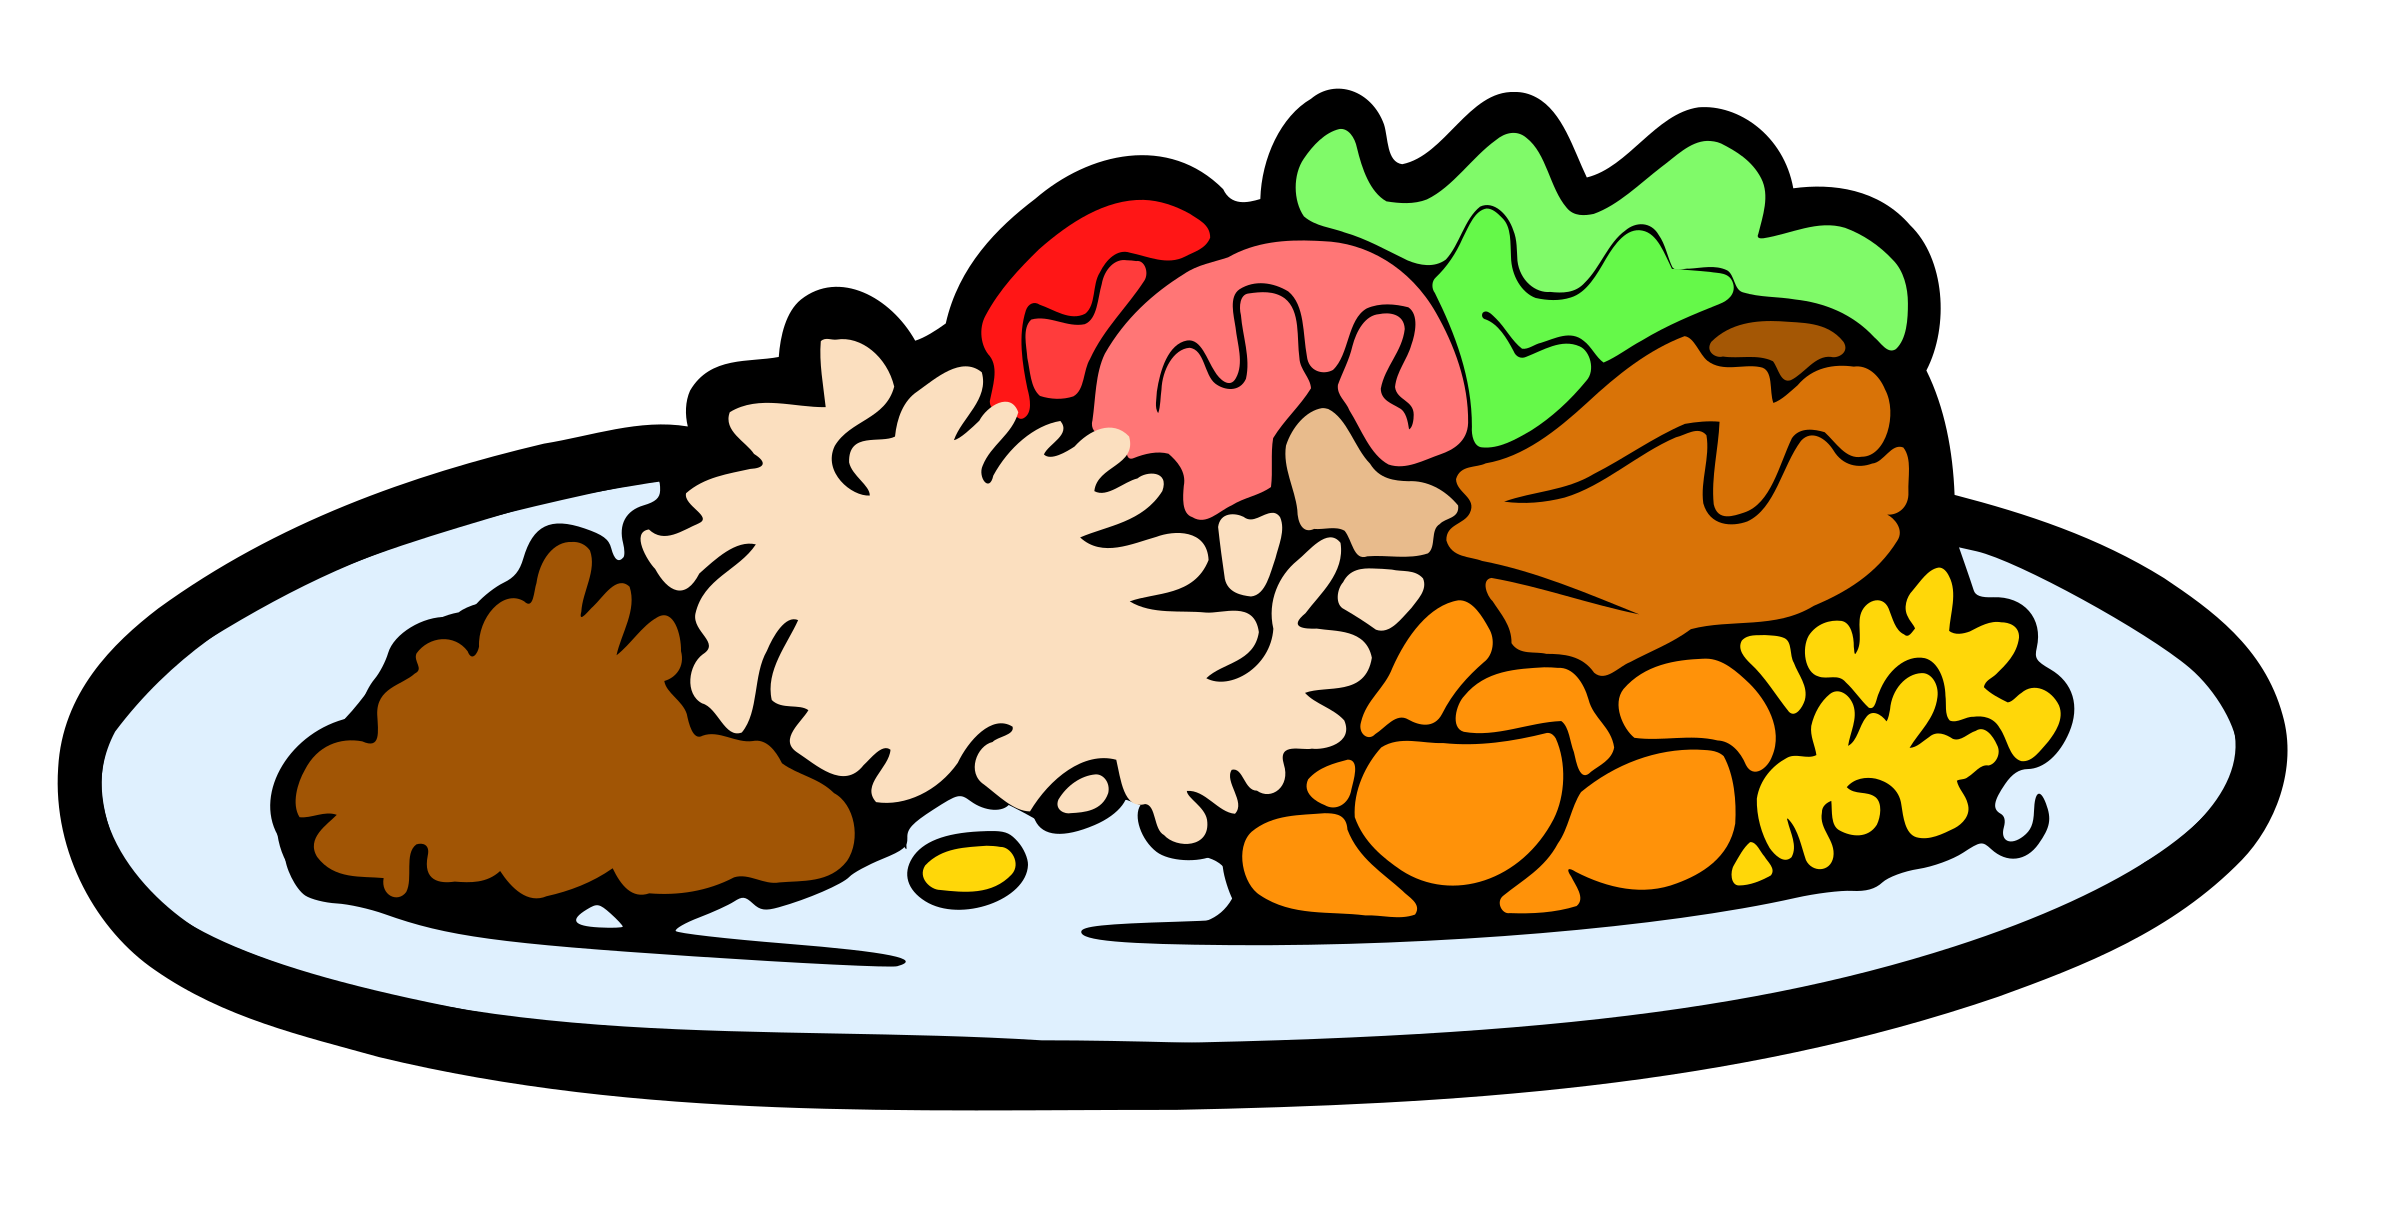 Turkey on a plate clipart vector transparent stock Dinner Plate Clipart at GetDrawings.com | Free for personal use ... vector transparent stock